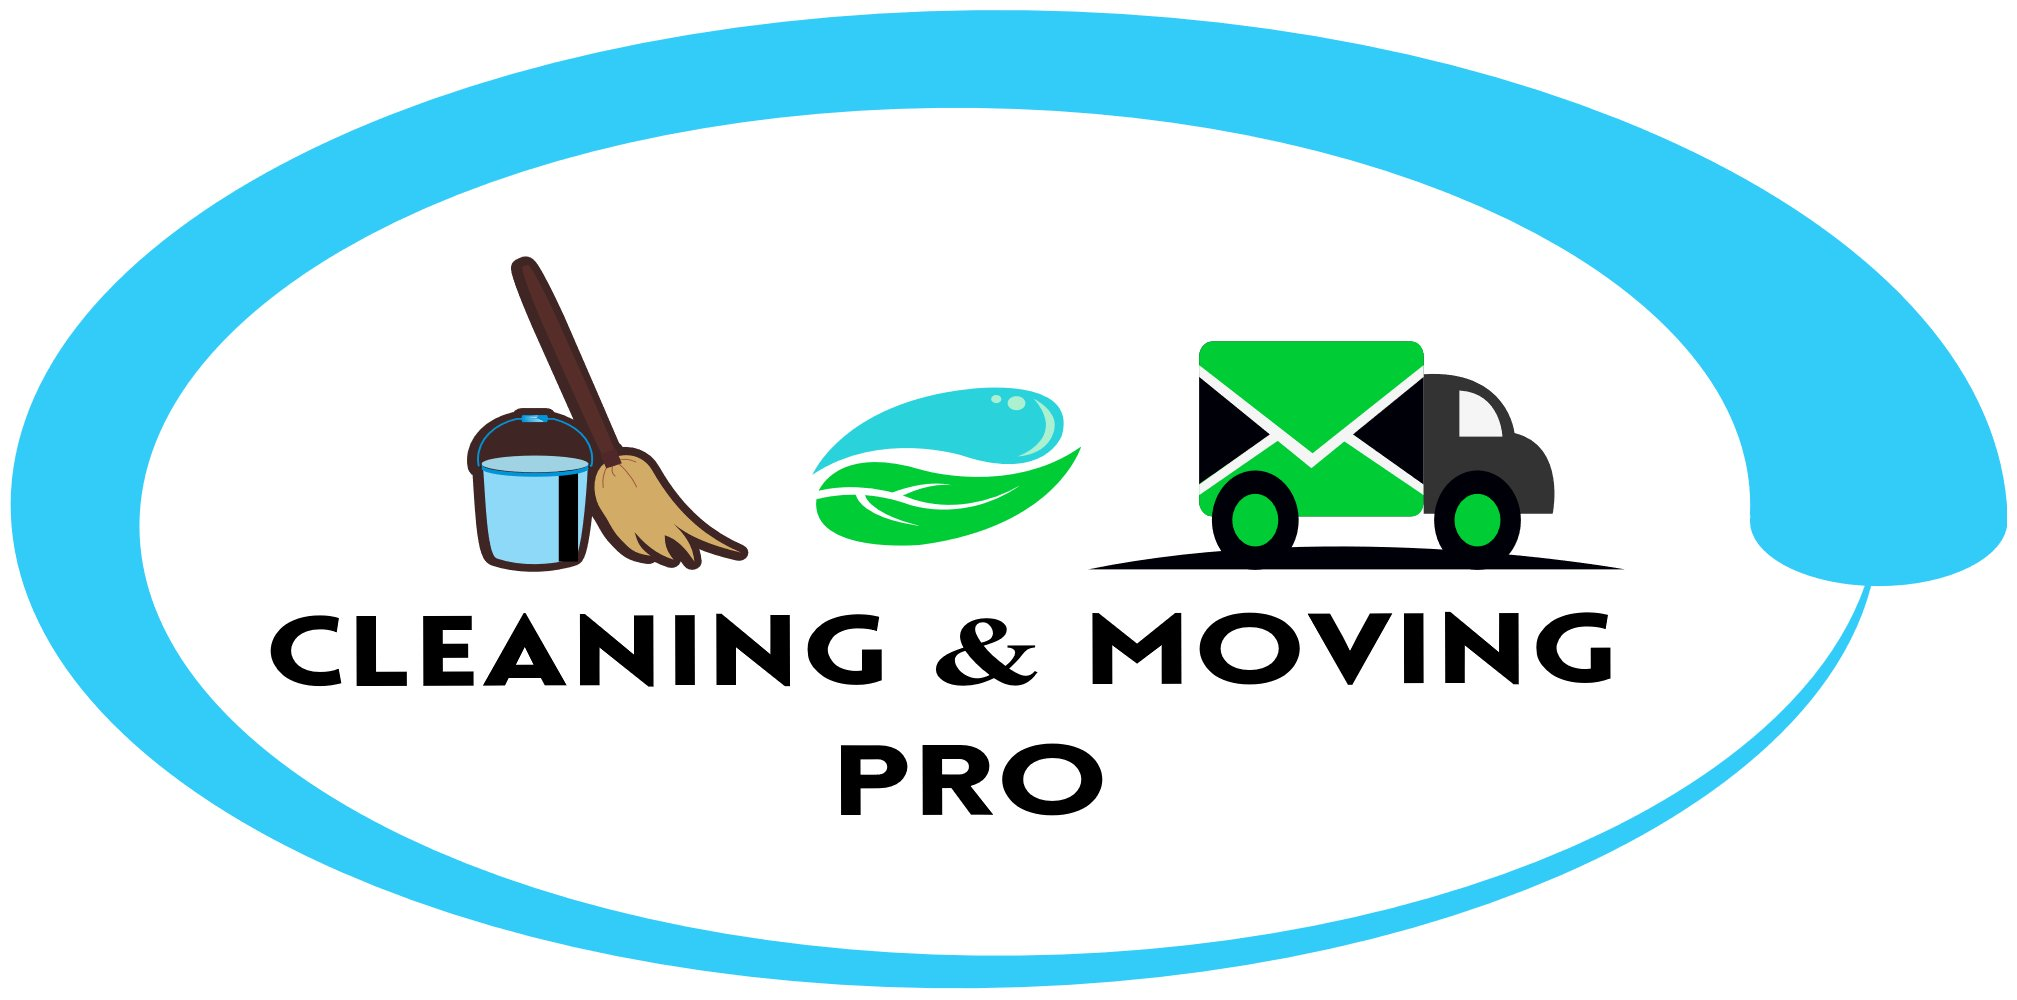 CLEANING AND MOVING PRO / Domestic and Commercial Cleaning Company / Galway / Dublin / House Removal /-CLEANING & MOVING PRO